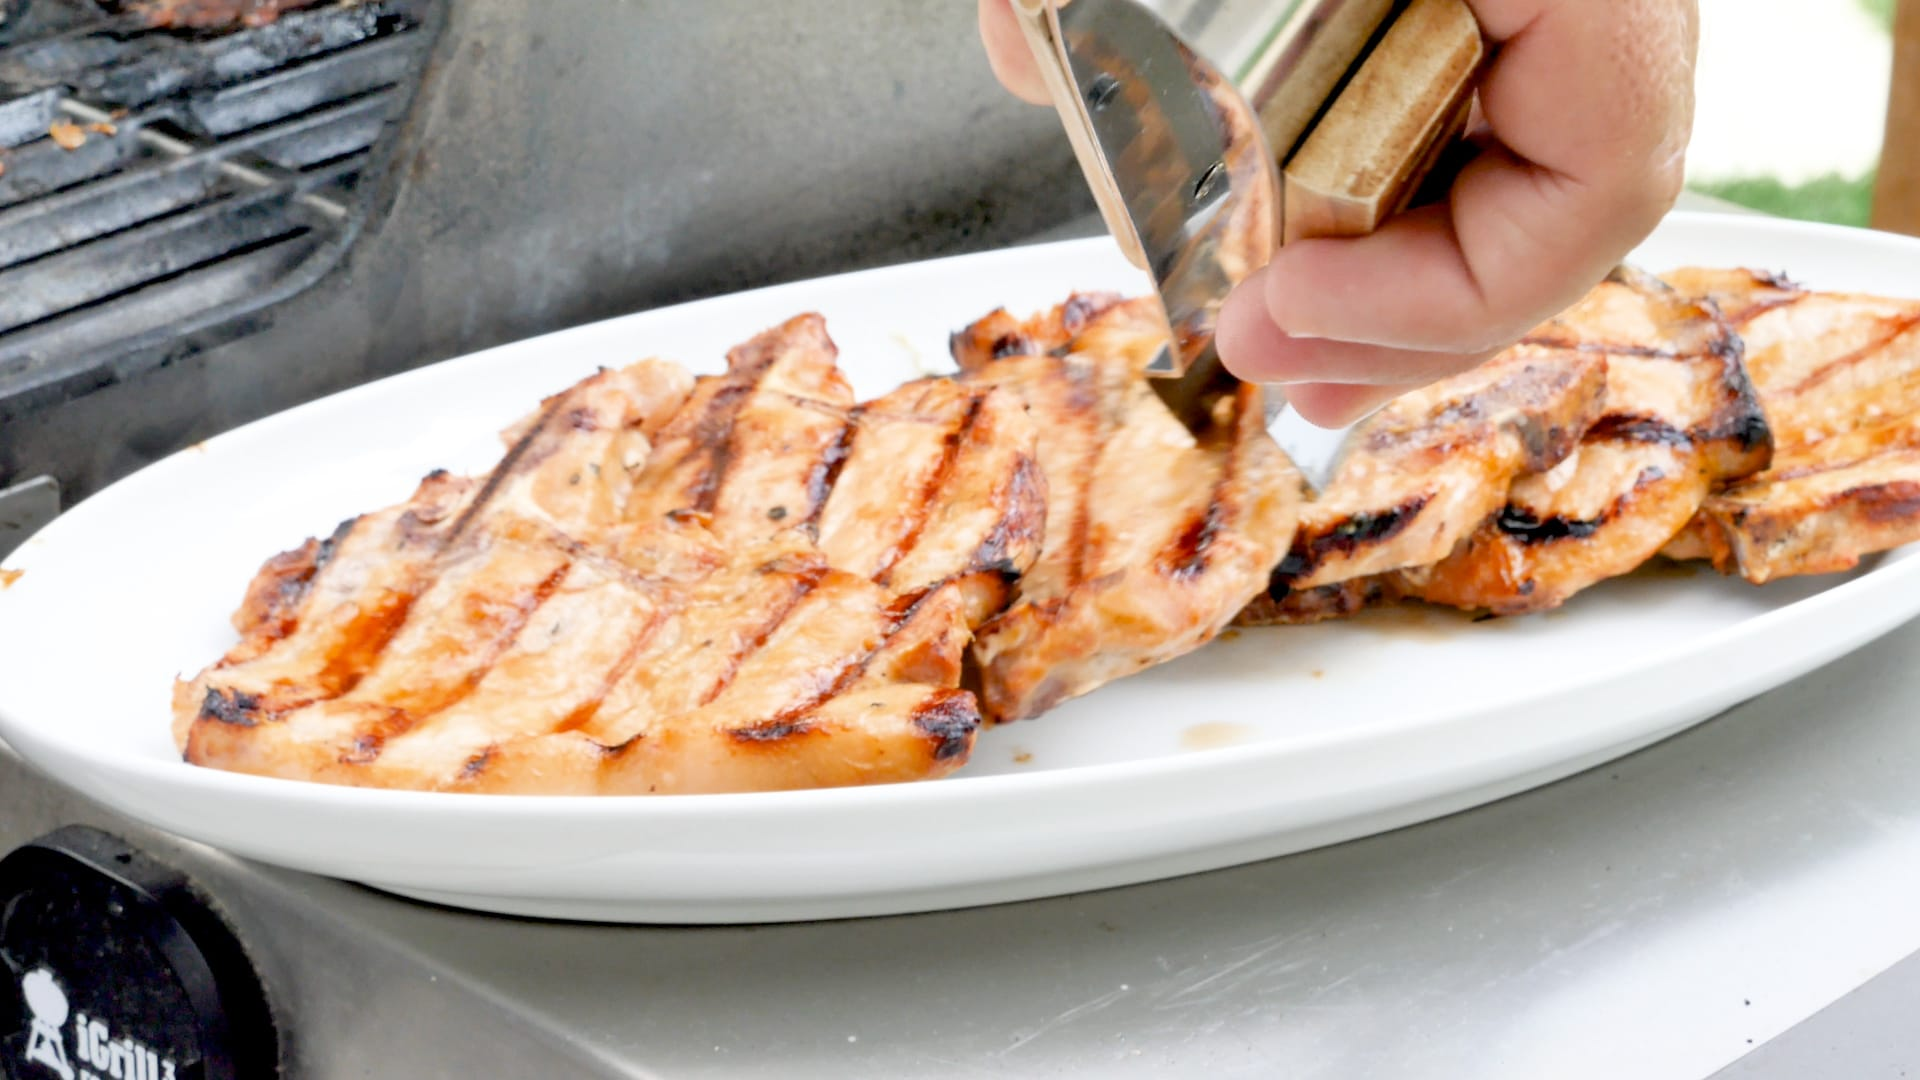 Putting the pork chops on serving plate